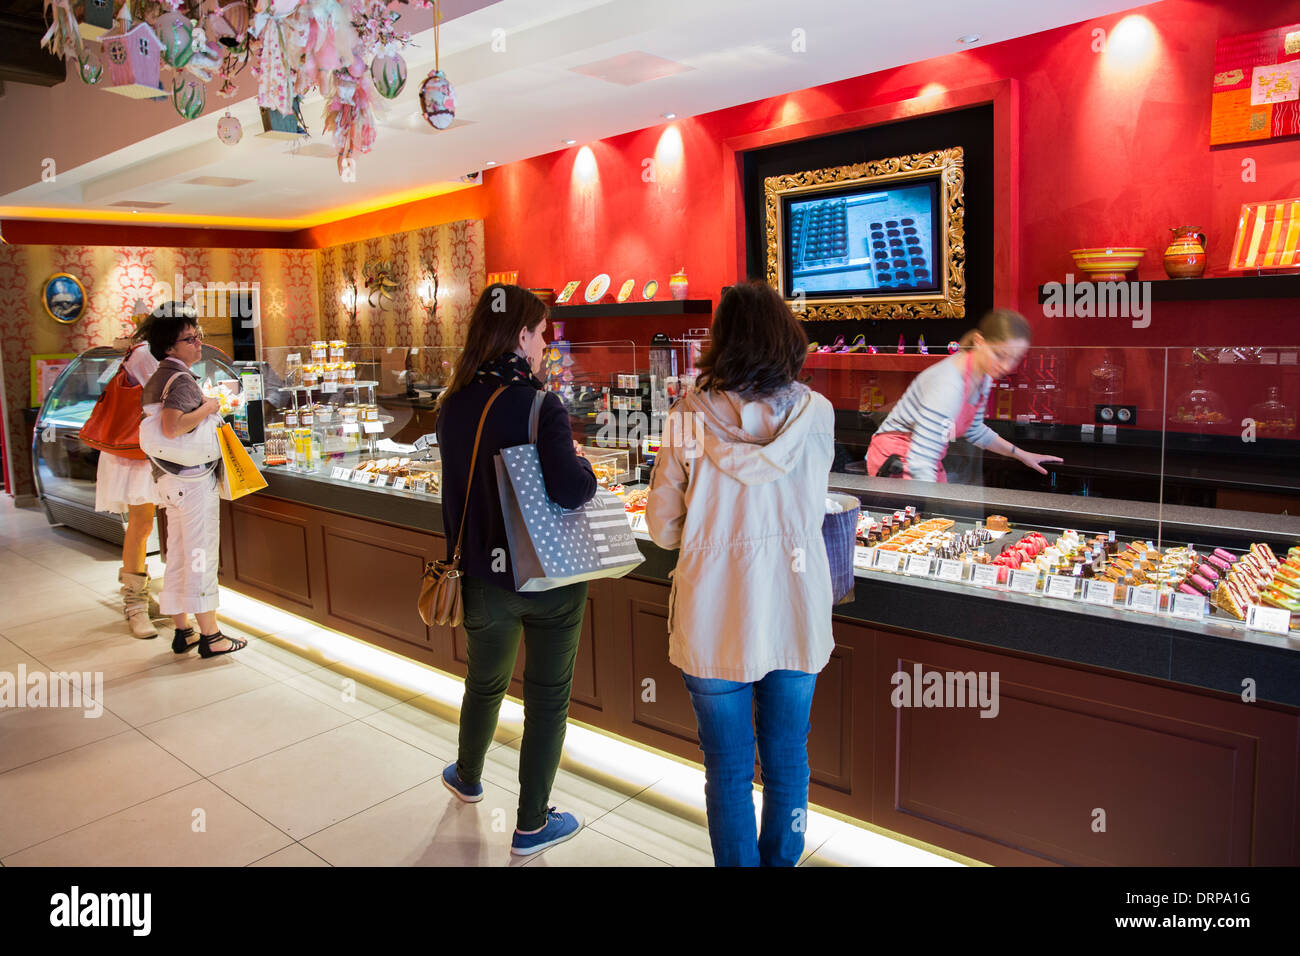 Shoppers in Patisserie and Chocolatier shop Carbillet in Rue des Forges in Dijon in the Burgundy region of France Stock Photo